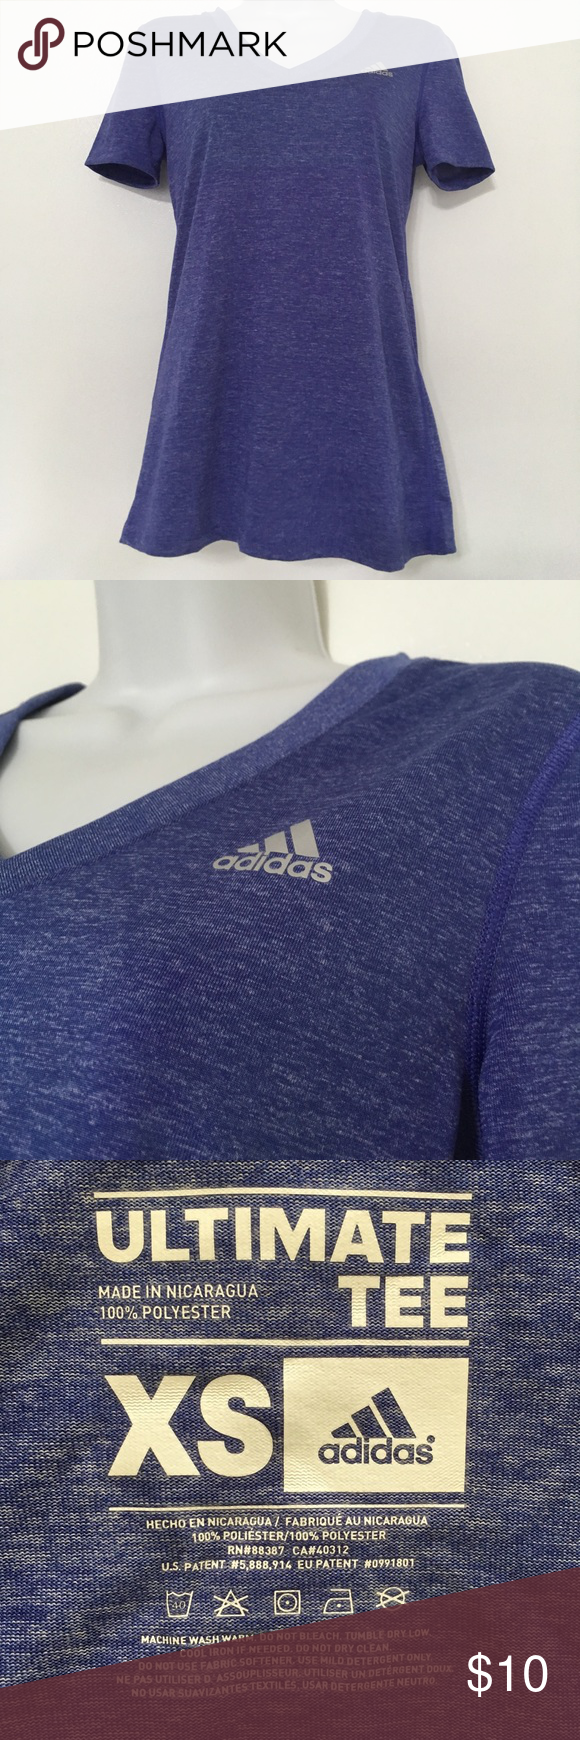 outlet store 56ecf ac0d0 Adidas Dri Fit T Shirts Womens